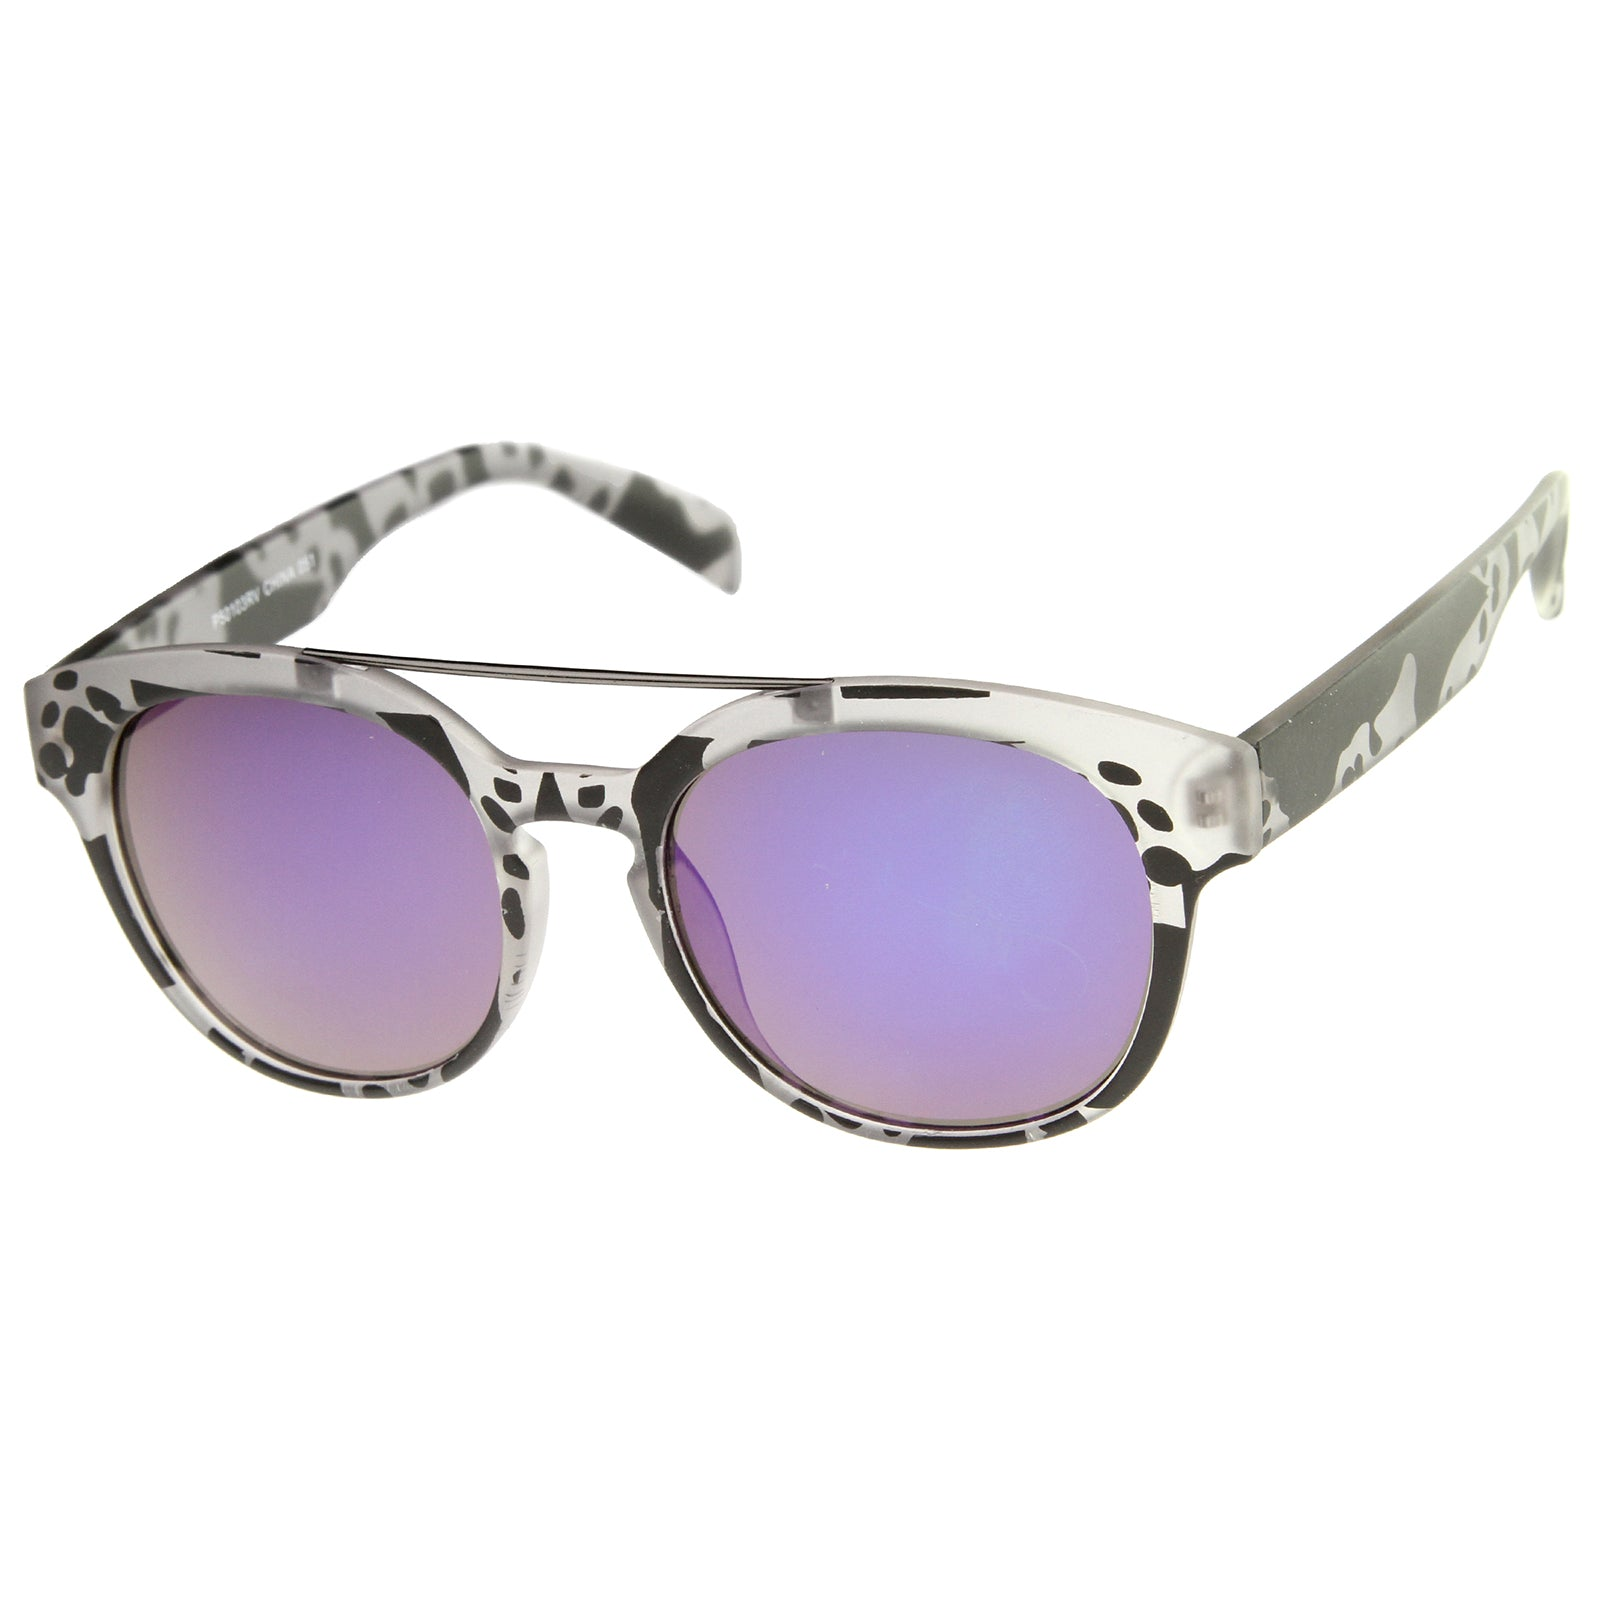 Modern Slim Metal Crossbar Iridescent Lens Horn Rimmed Sunglasses 51mm - sunglass.la - 14